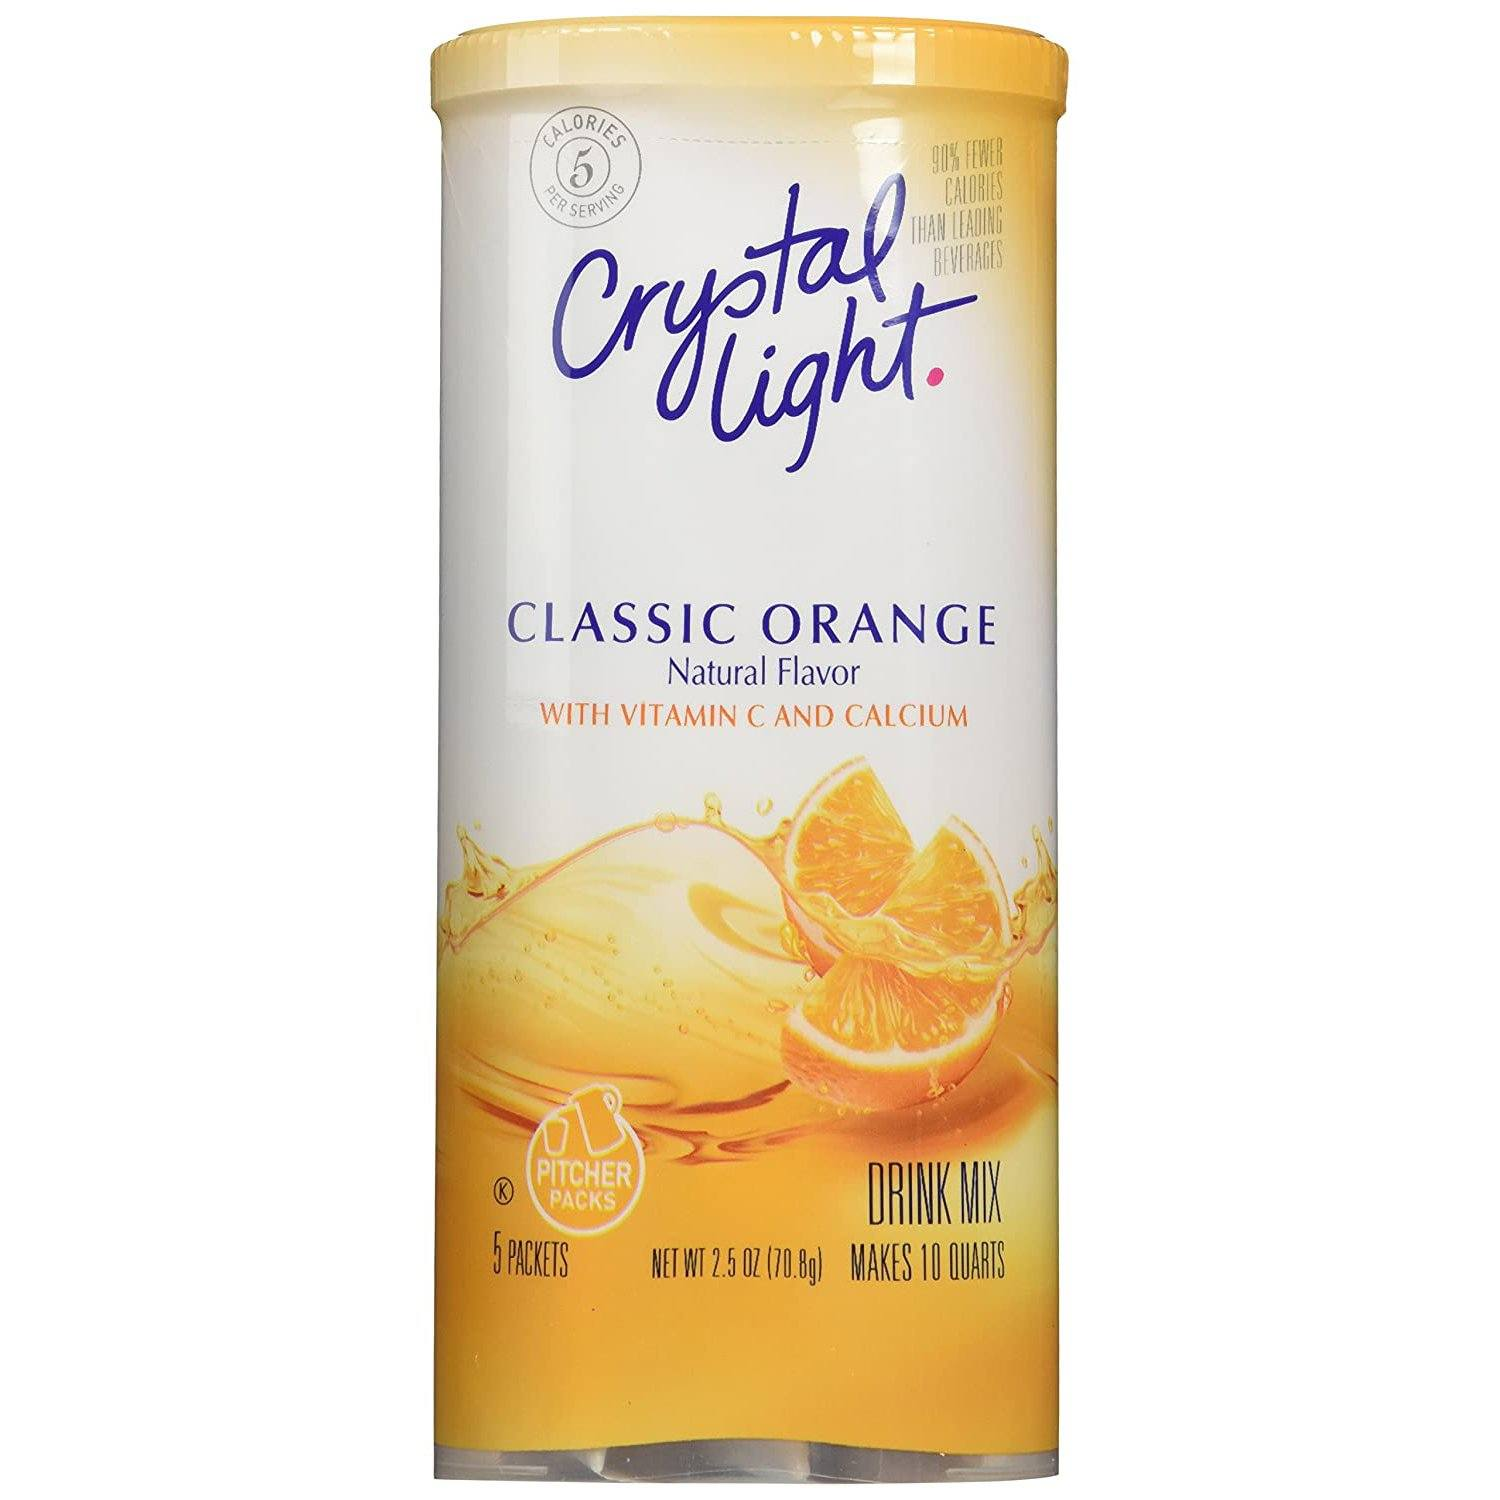 Crystal Light Drink Mixes Crystal Light Classic Orange 5 Pitcher Packets